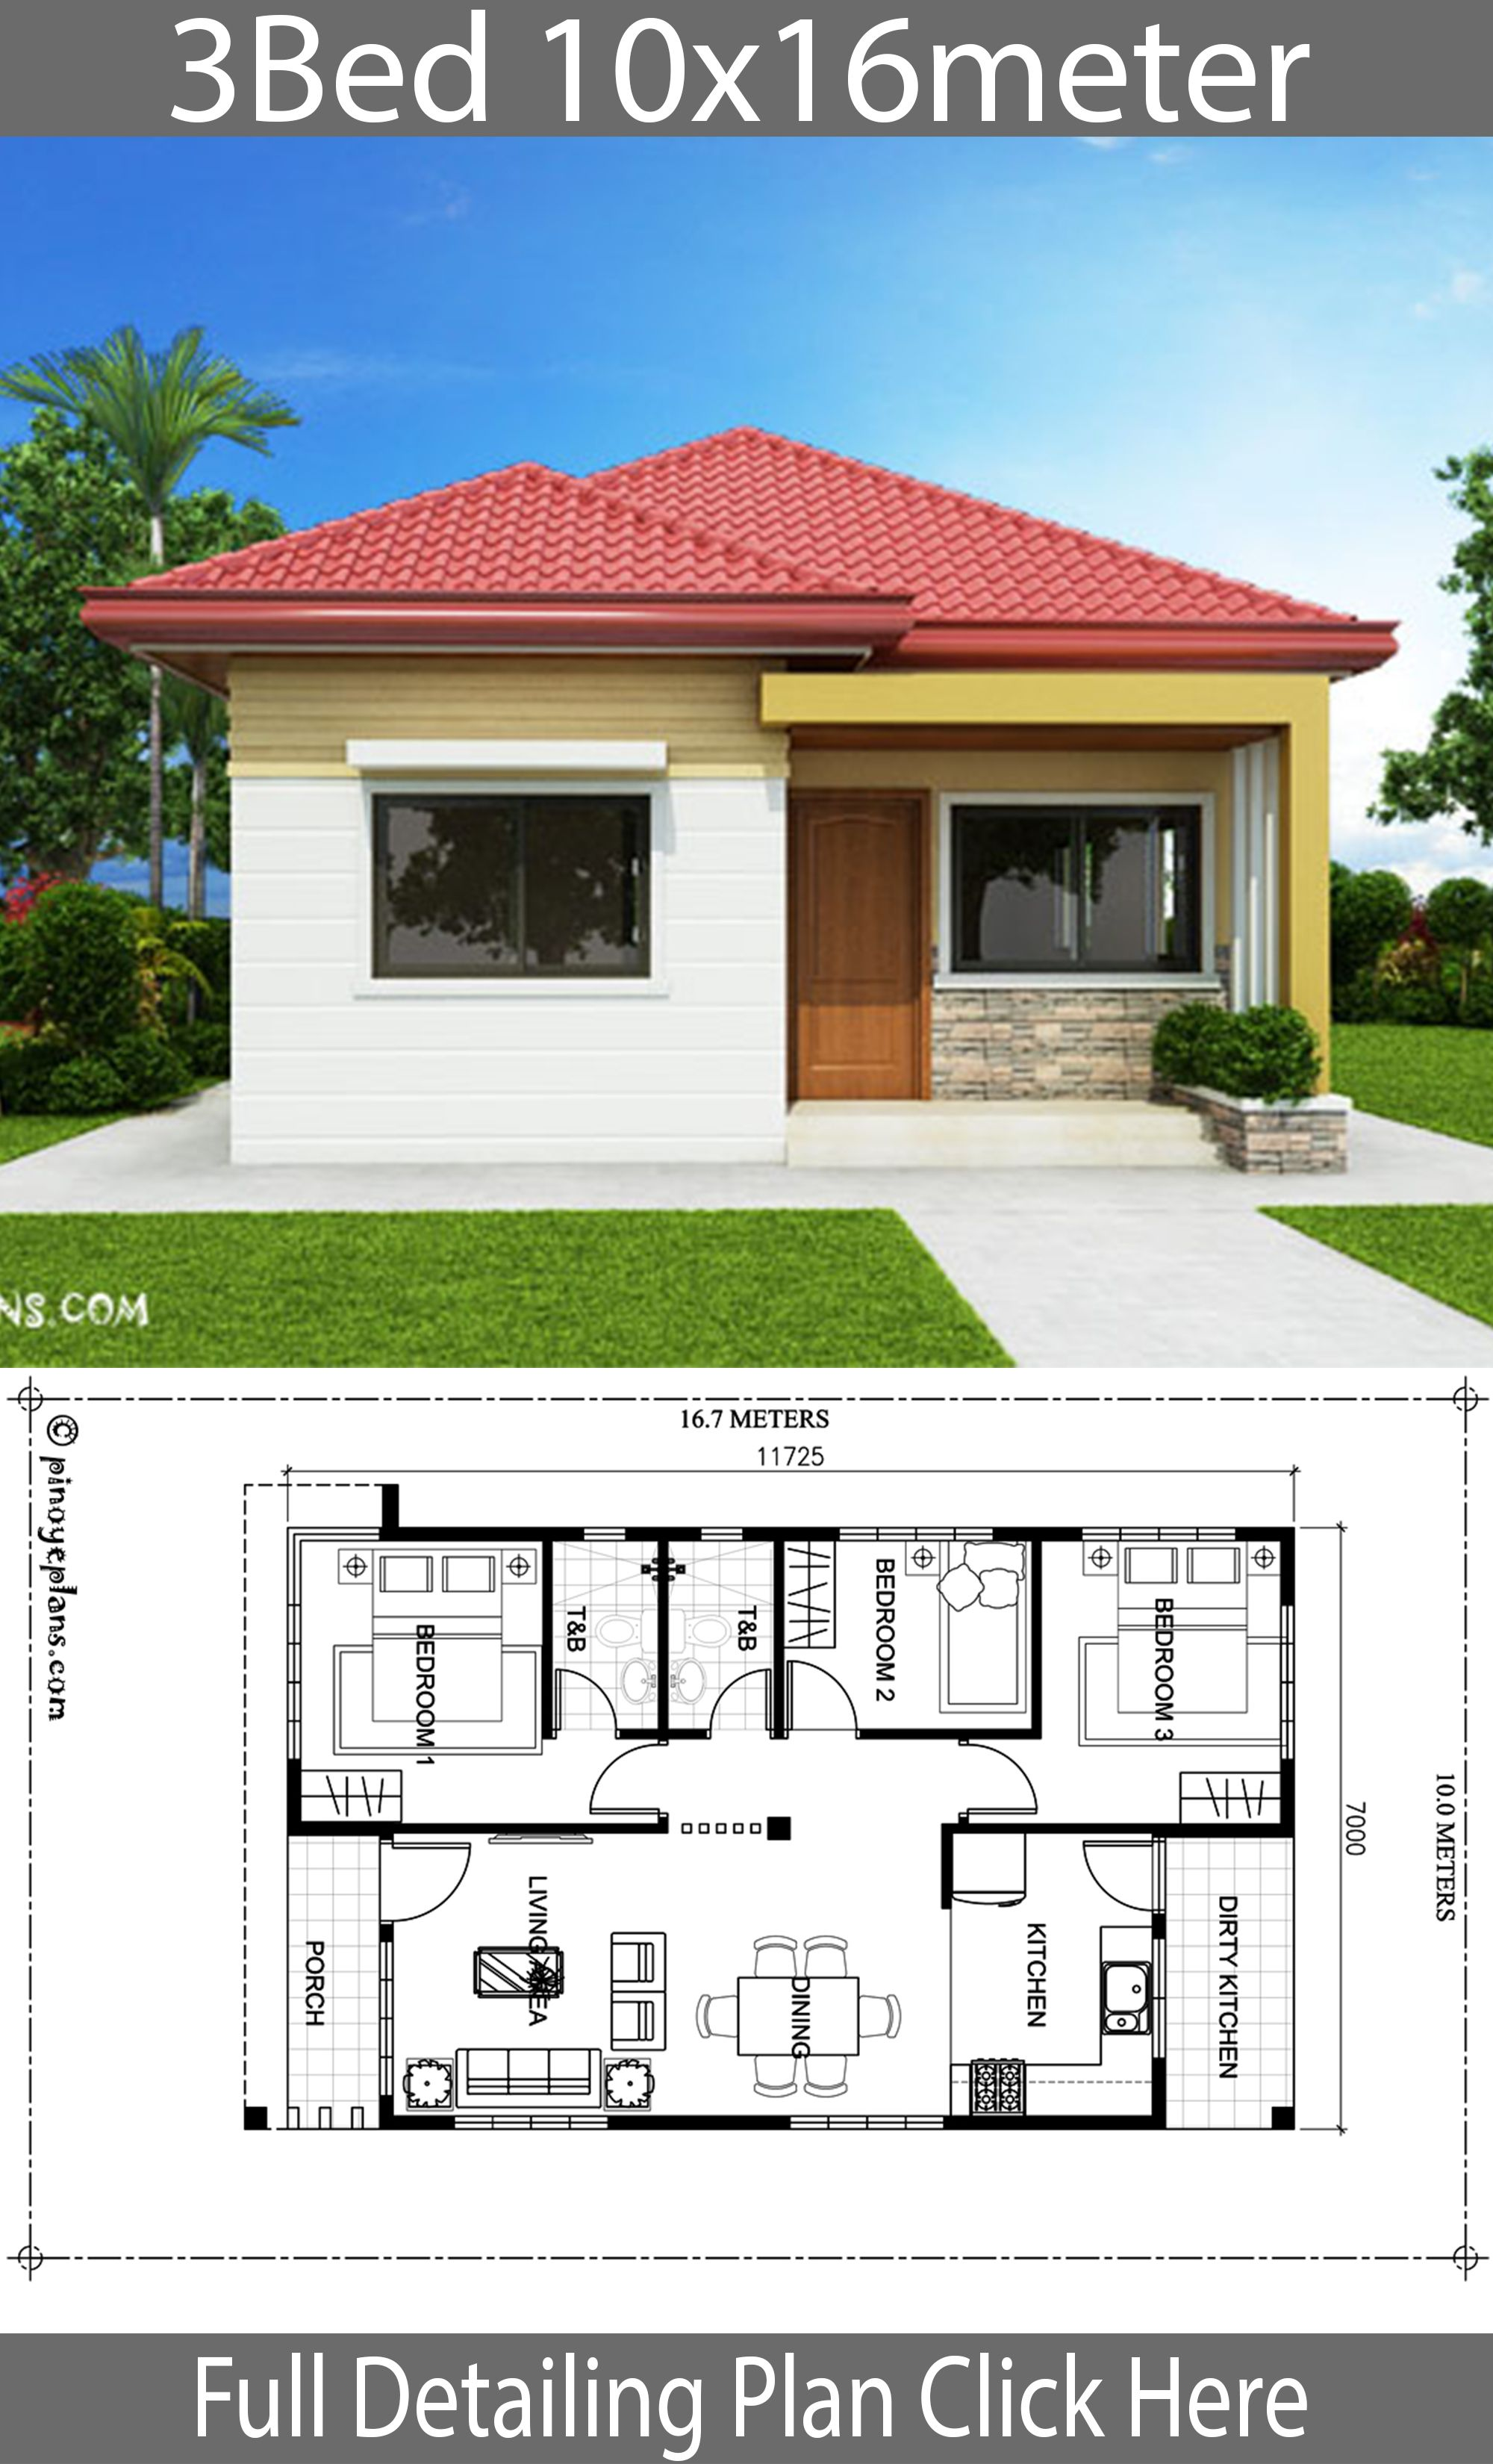 Home Design 10x16m With 3 Bedrooms House Idea Bungalow Style